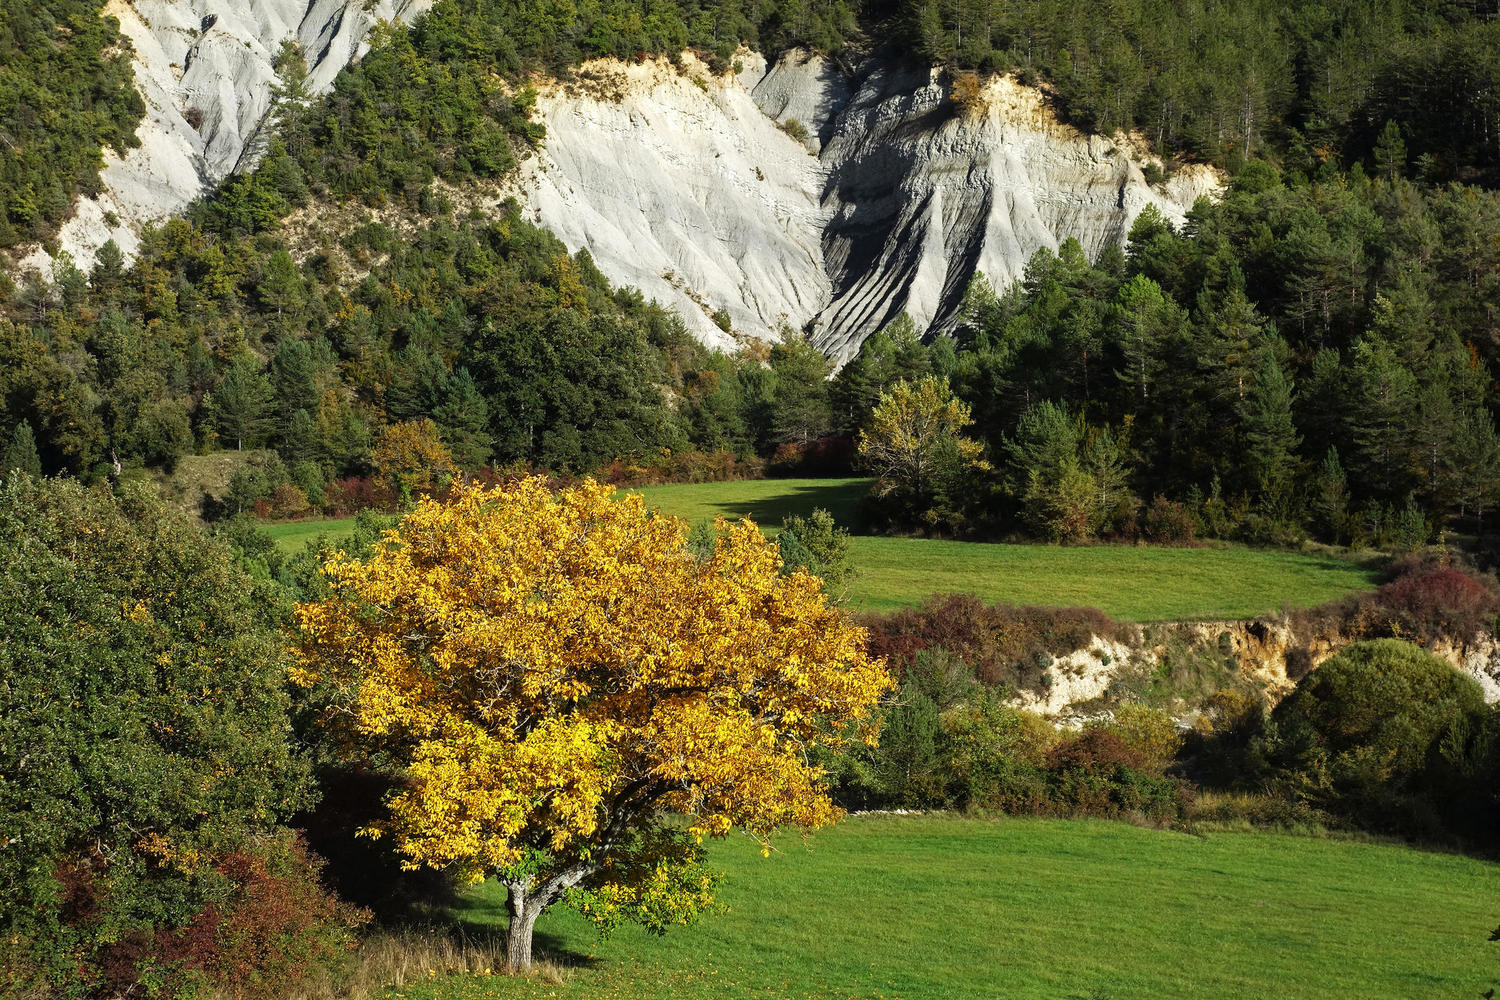 Fall colours in the Sobrarbe, foothills of the Pyrenees.